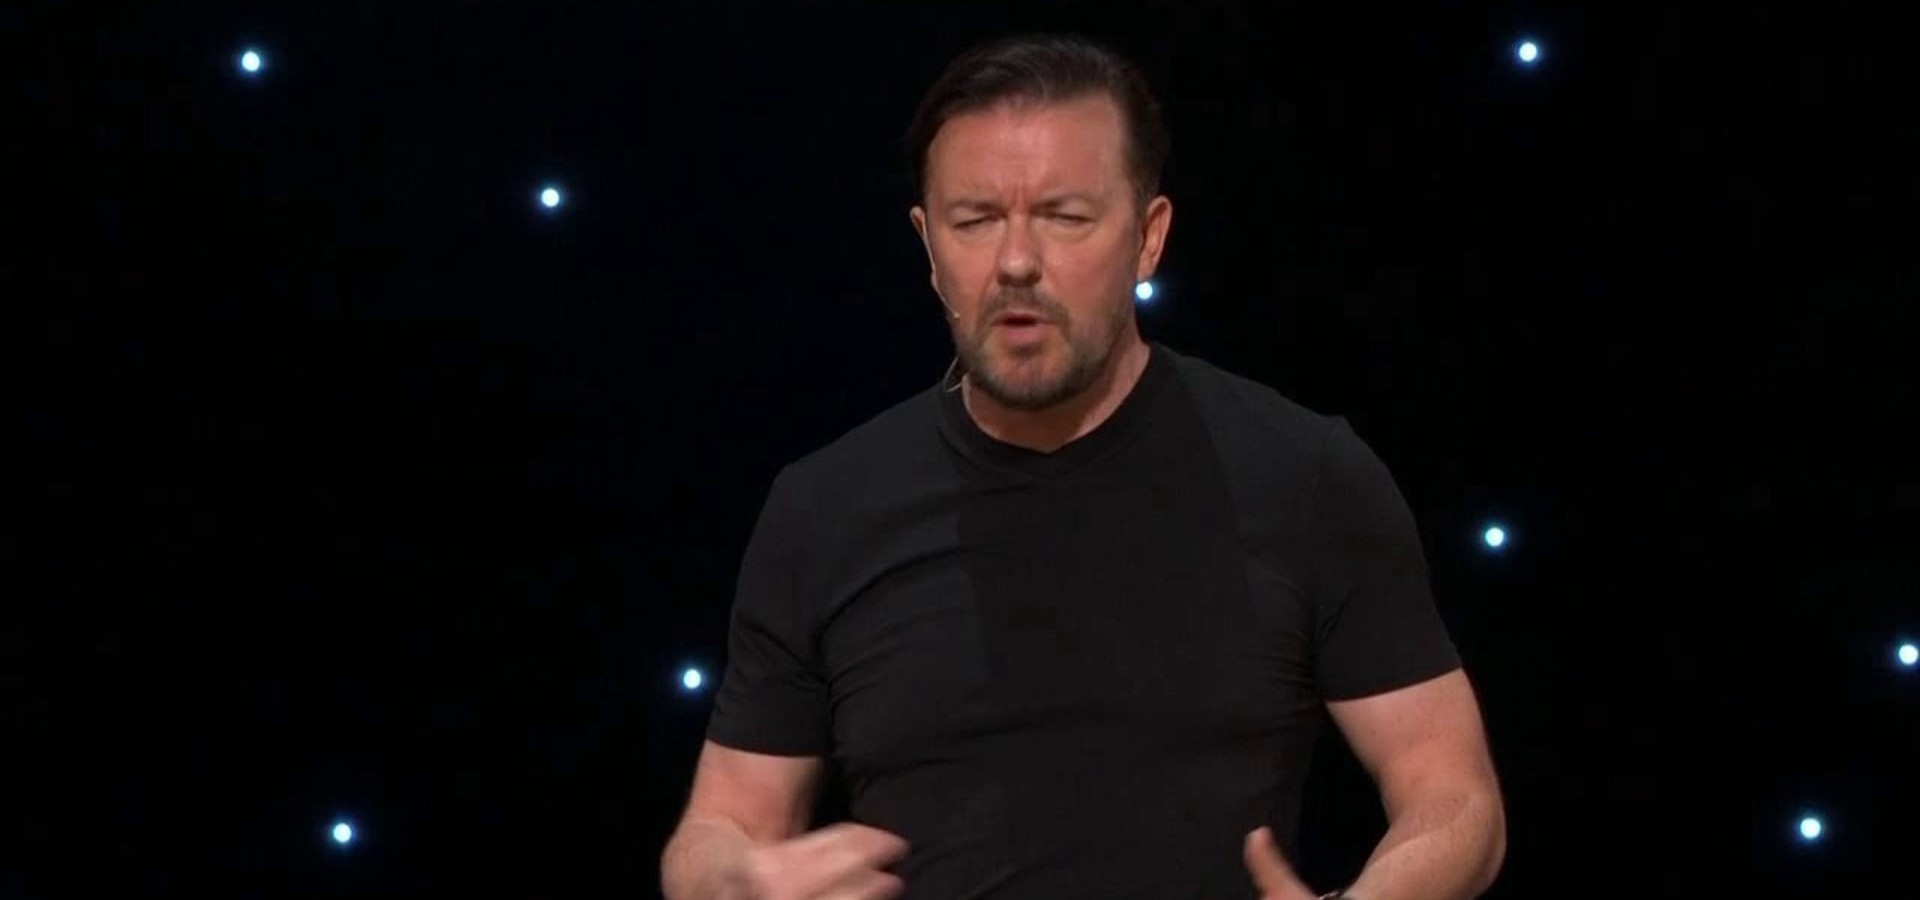 Ricky Gervais: Out of England